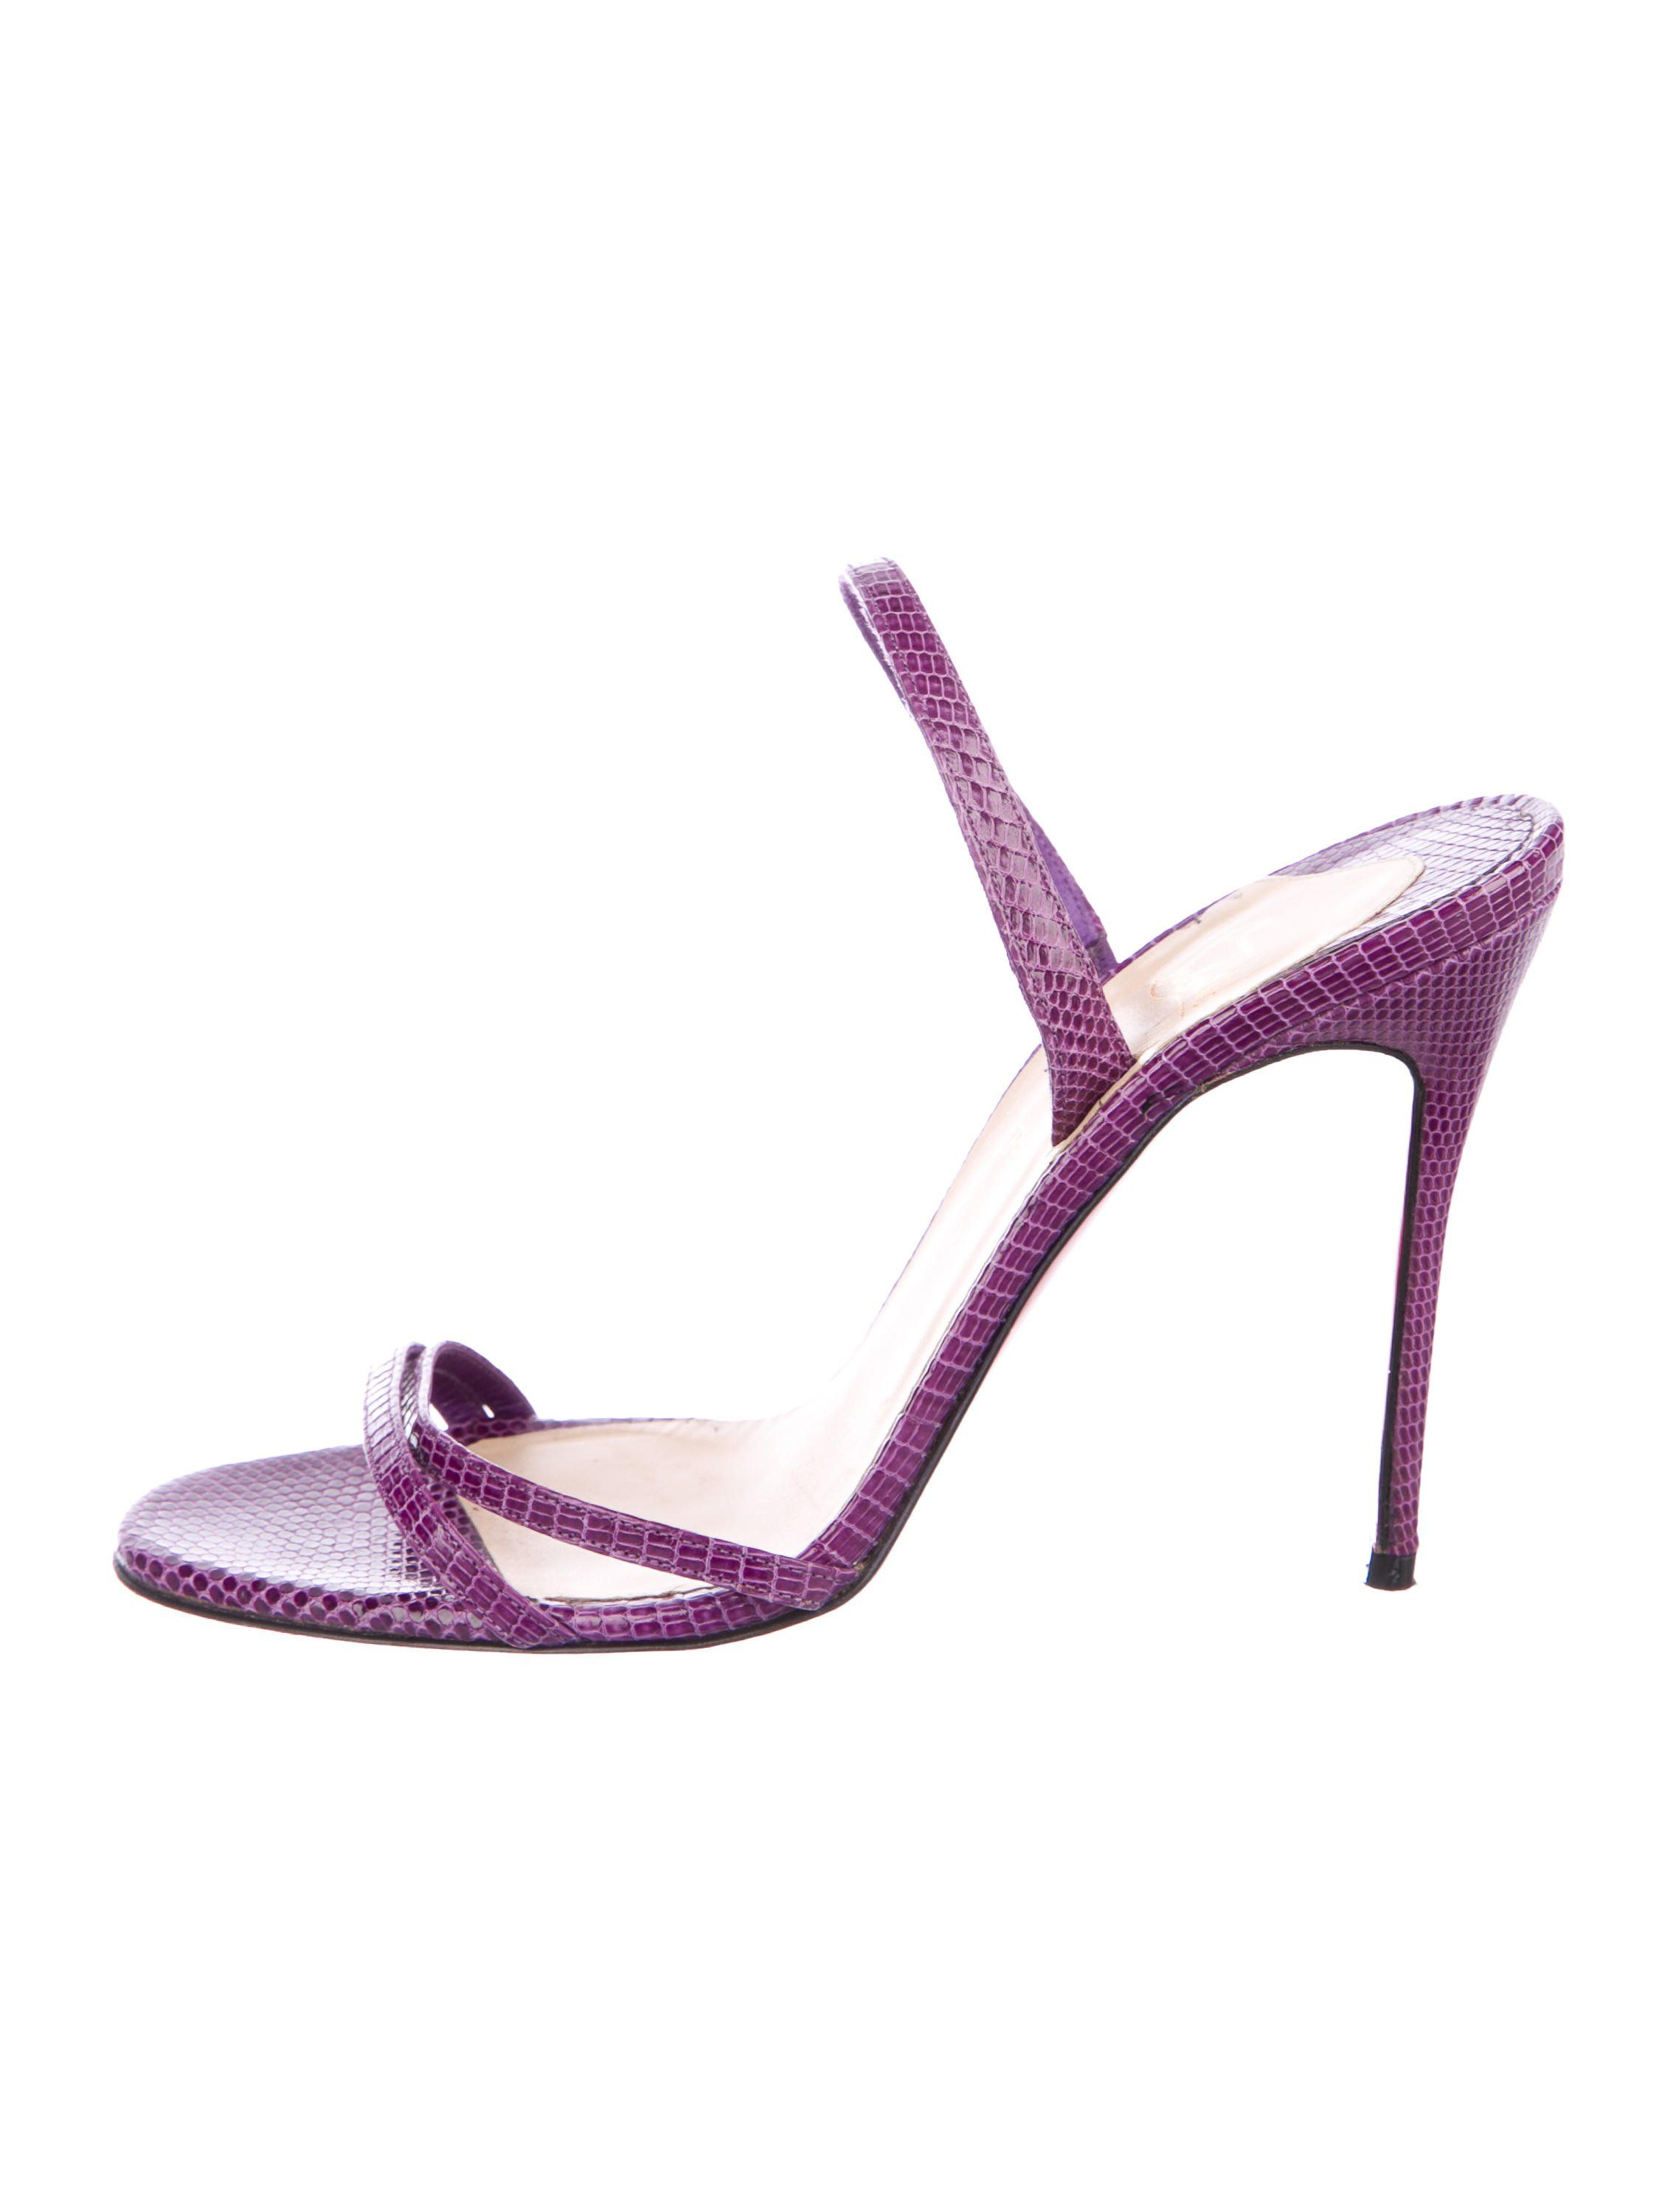 838aa07e7645 Christian Louboutin Lizard Crossover Sandals - Shoes - CHT92762